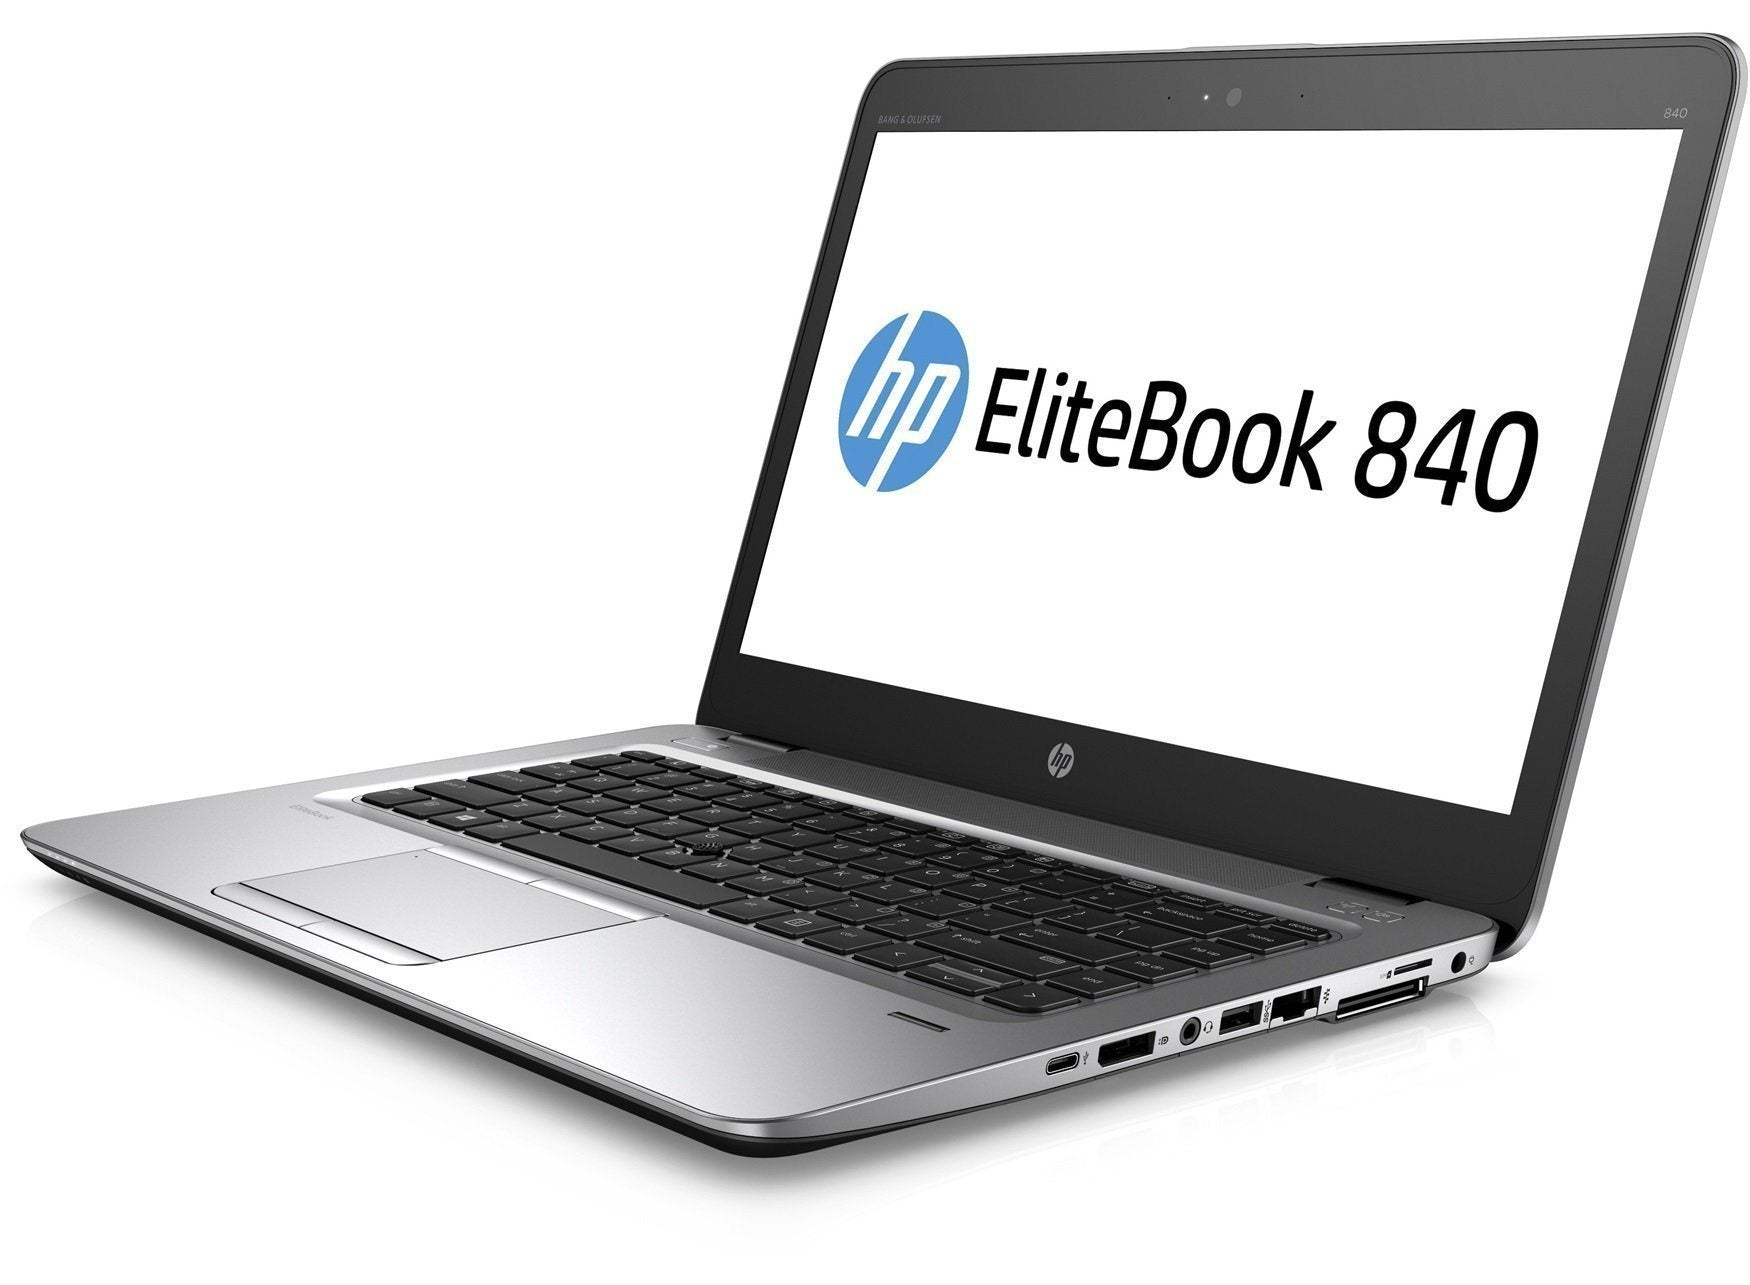 "HP Elitebook 840 G3 Ex Lease Laptop i5-6300U 2.4GHz 8GB RAM 500GB HDD 14"" WebCam  Windows 10 PRO - BEST PRICE! Discount Codes Do Not Apply!"